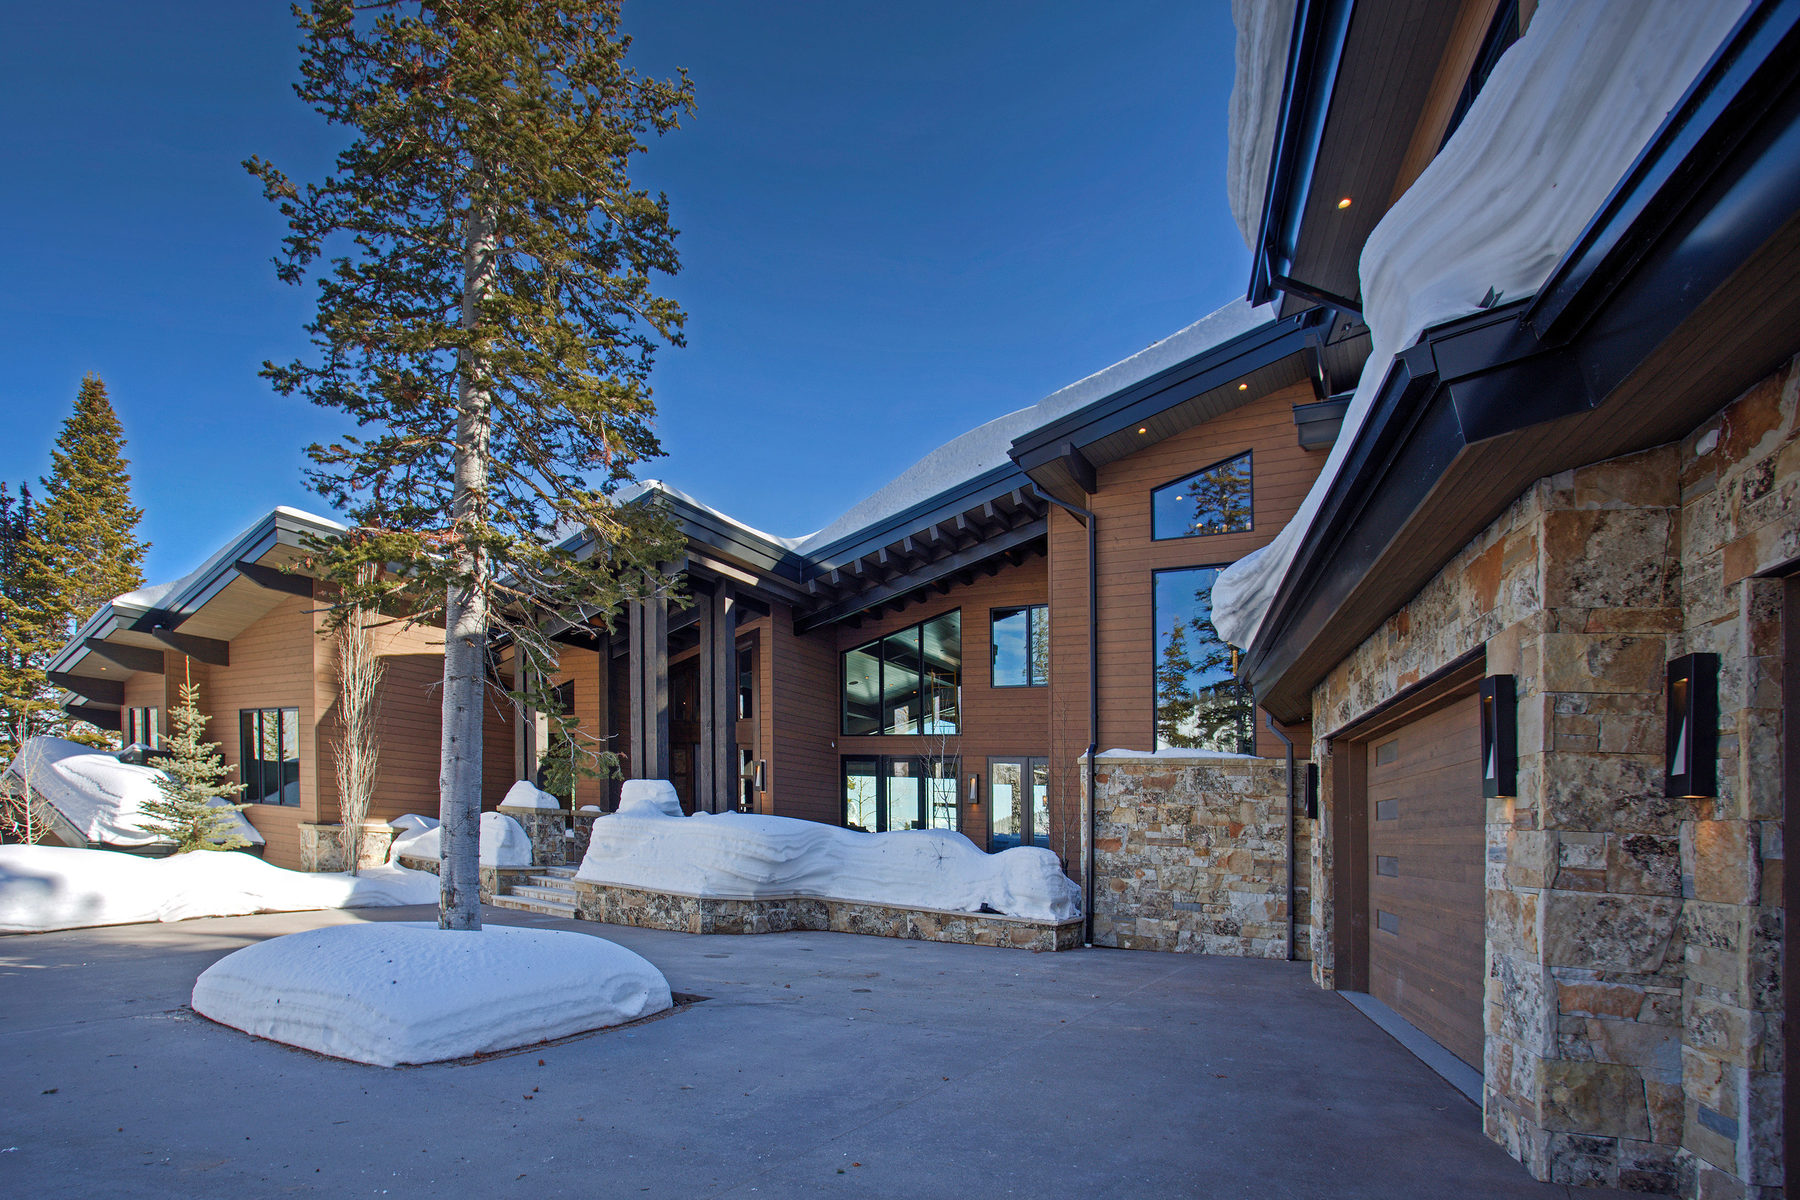 Maison unifamiliale pour l Vente à Don't miss this incredible opportunity to own one of the finest homes ever built 109 White Pine Canyon Rd Park City, Utah, 84060 États-Unis